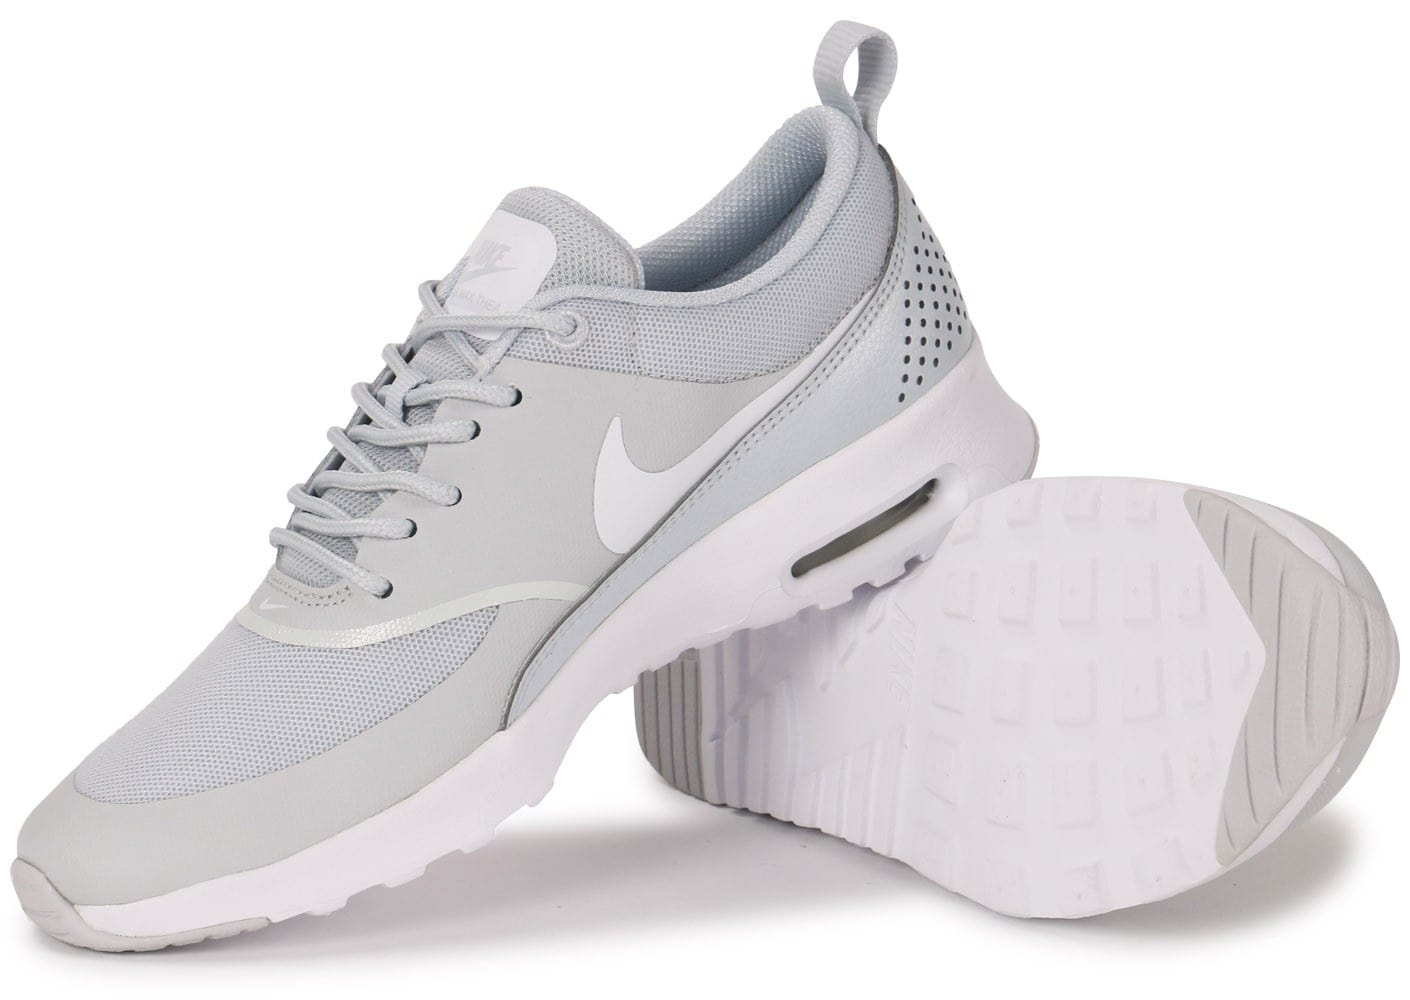 Chaussures Nike Air Max Thea grises femme 6G9UltkWAT